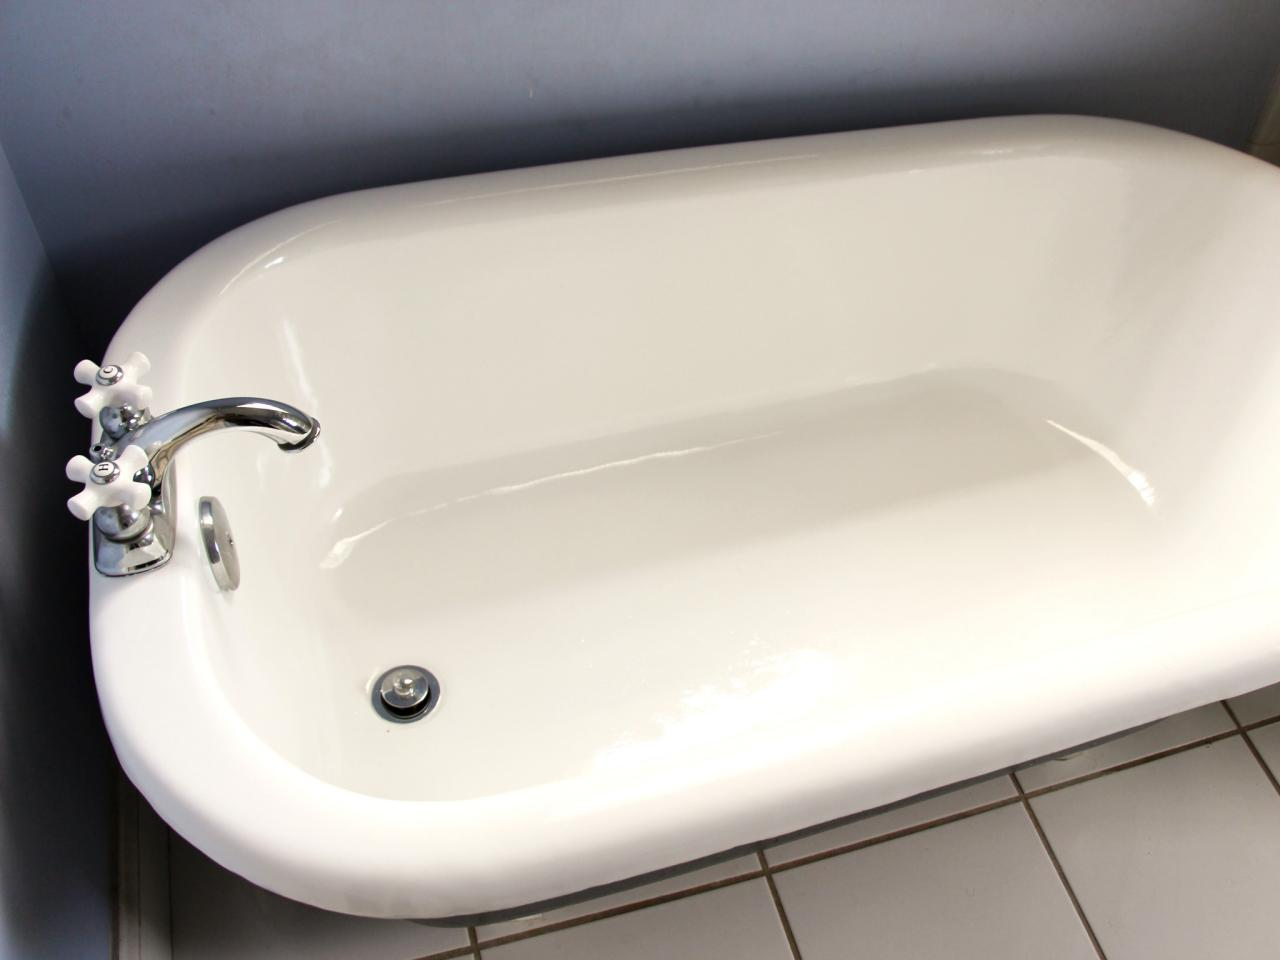 How to Refinish a Bathtub | how-tos | DIY